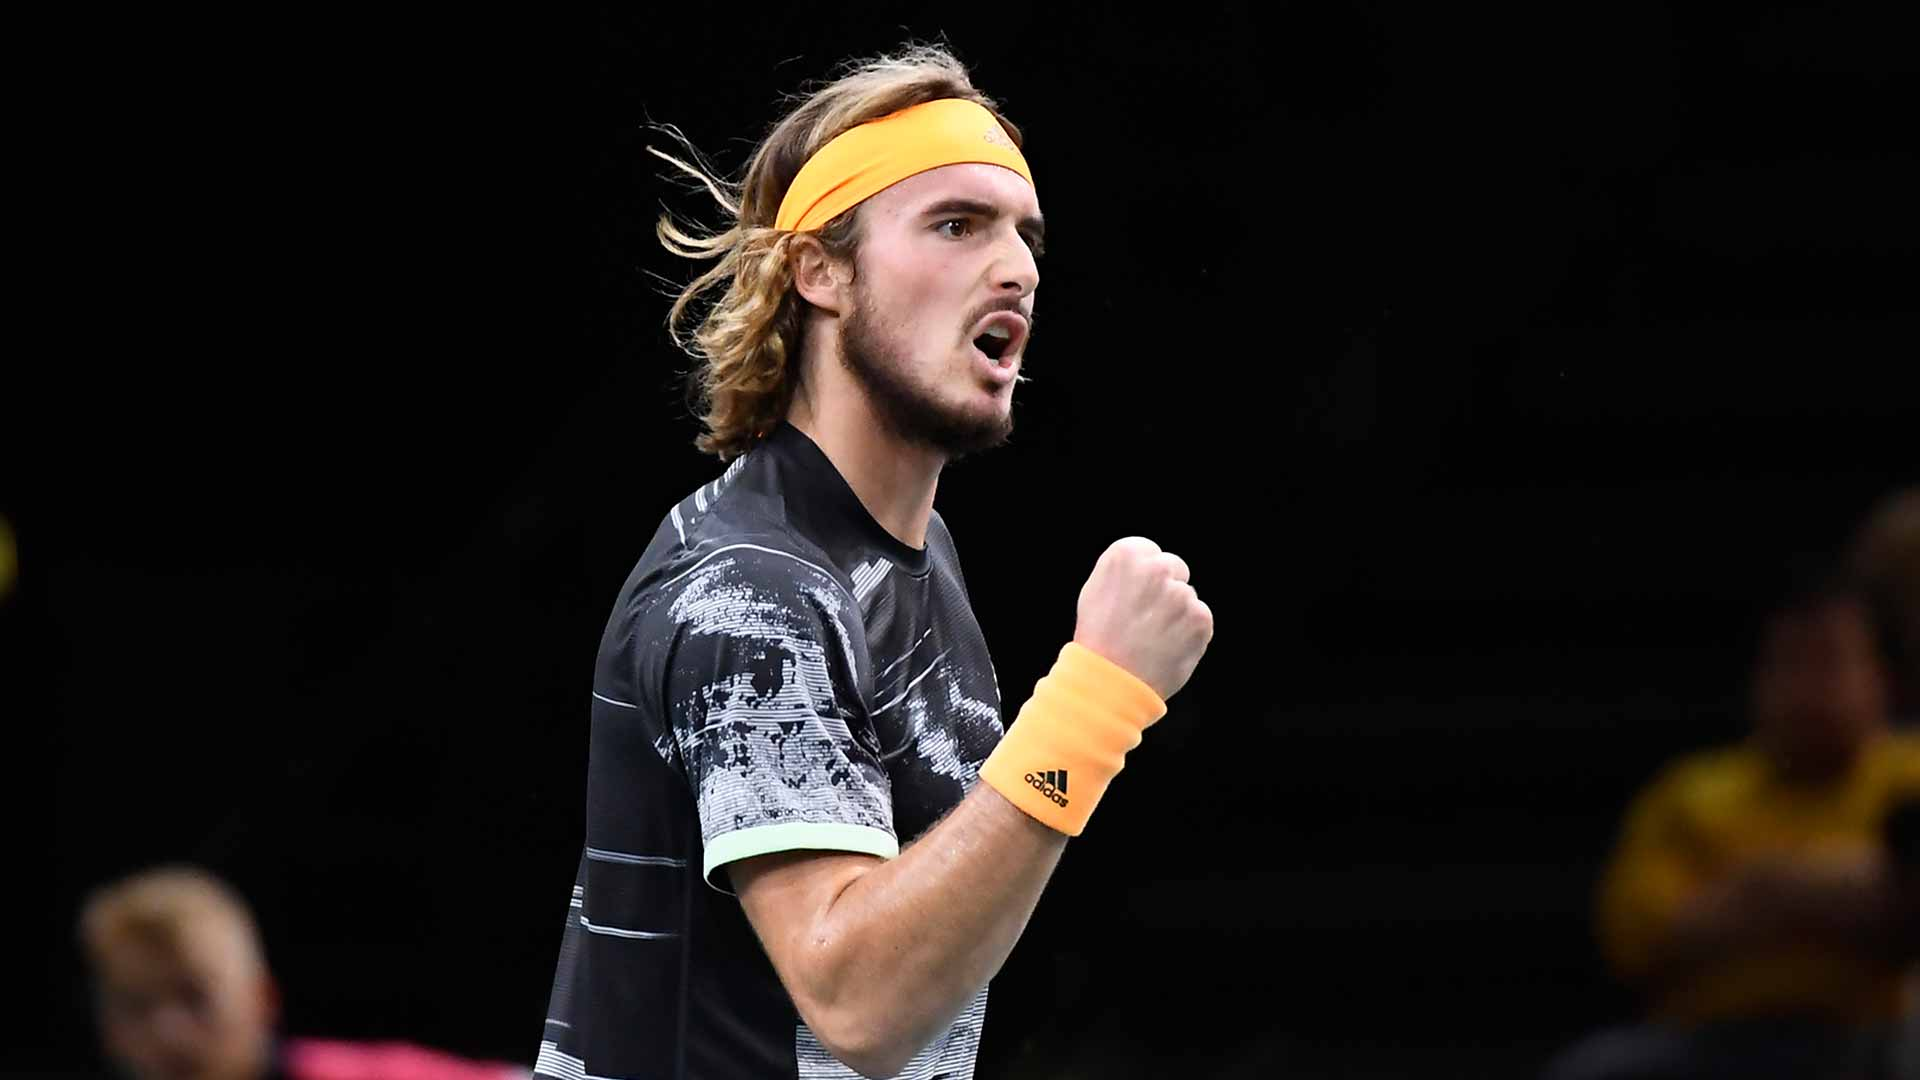 <a href='https://www.atptour.com/en/players/stefanos-tsitsipas/te51/overview'>Stefanos Tsitsipas</a> reaches the quarter-finals at the <a href='https://www.atptour.com/en/tournaments/paris/352/overview'>Rolex Paris Masters</a>